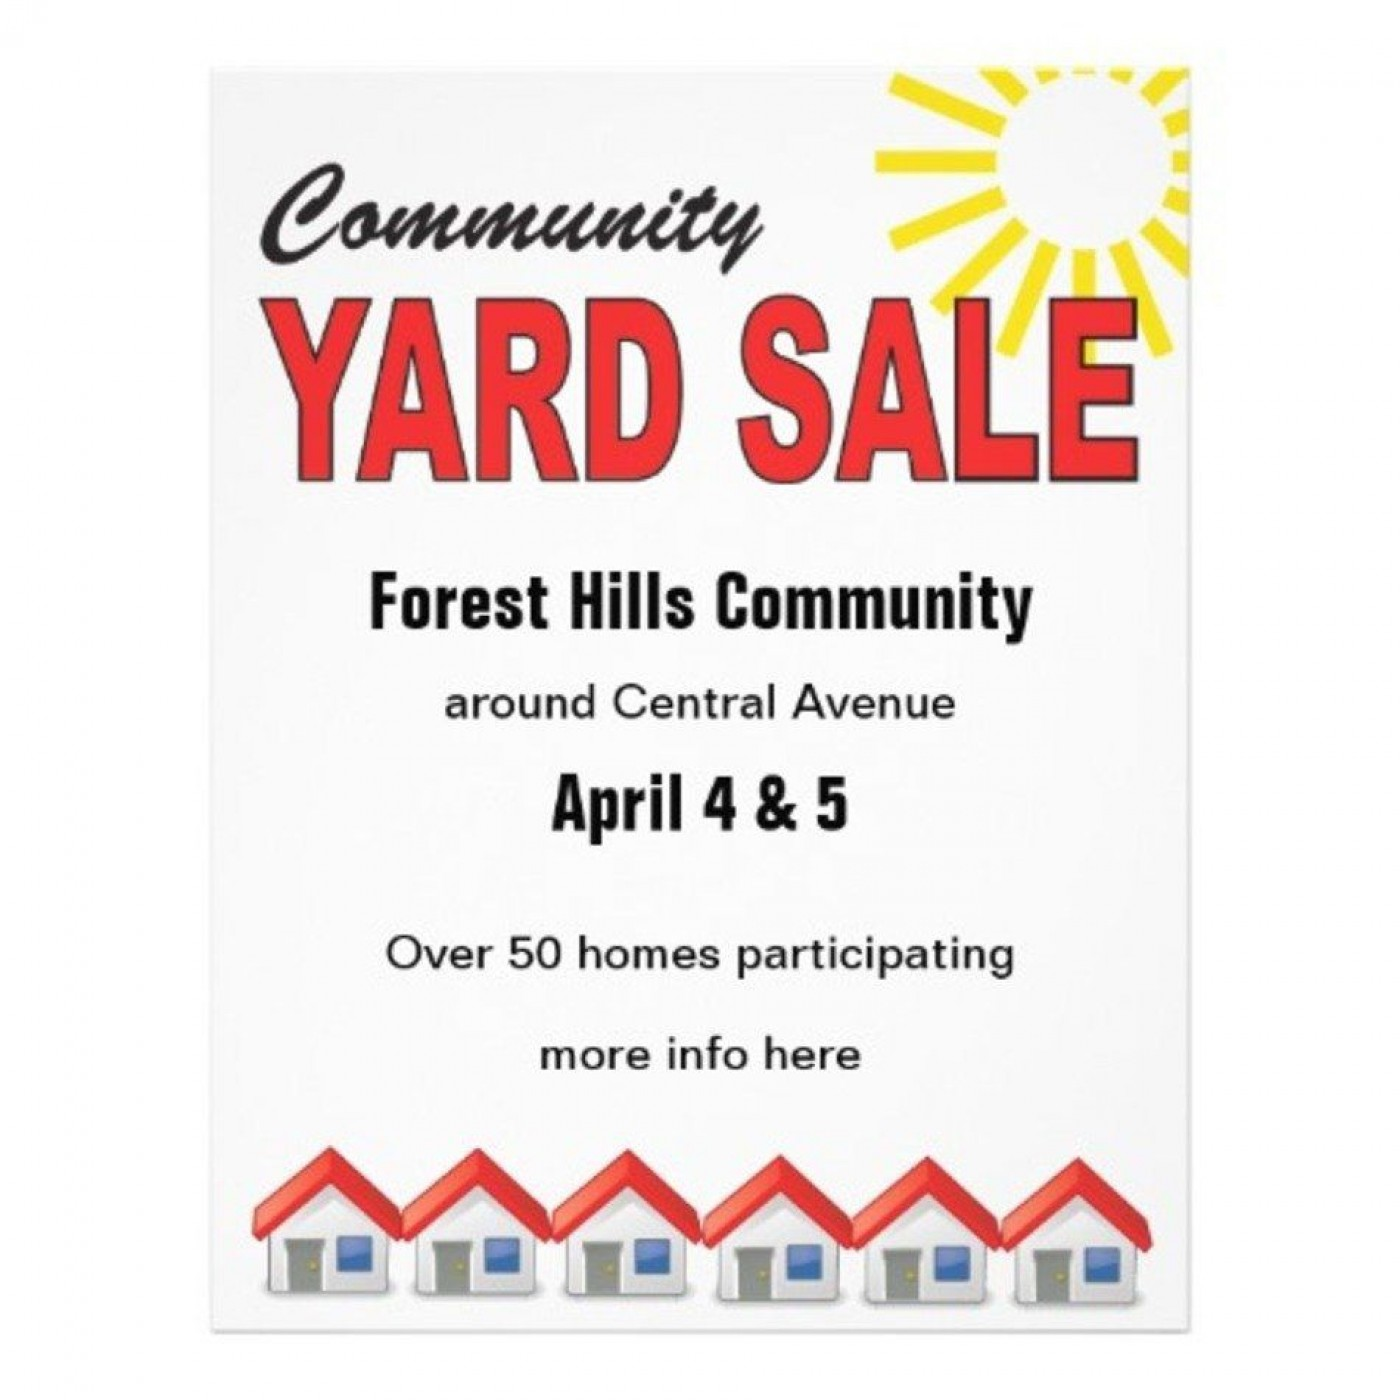 000 Incredible Garage Sale Sign Template Inspiration  Flyer Microsoft Word Community Yard Free Rummage1400